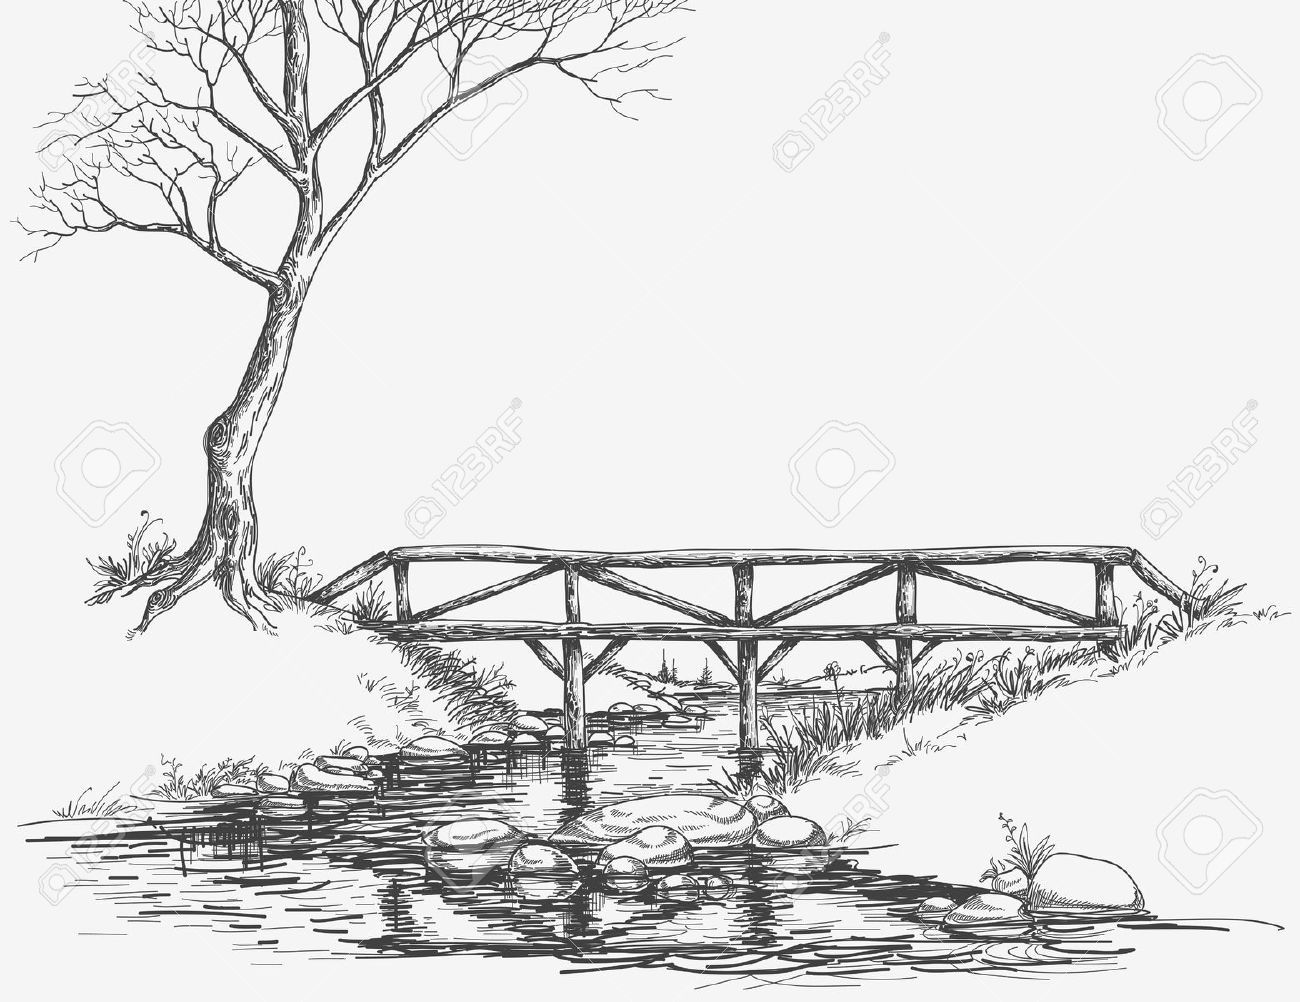 Pencil line drawing river google search spring pencil drawings